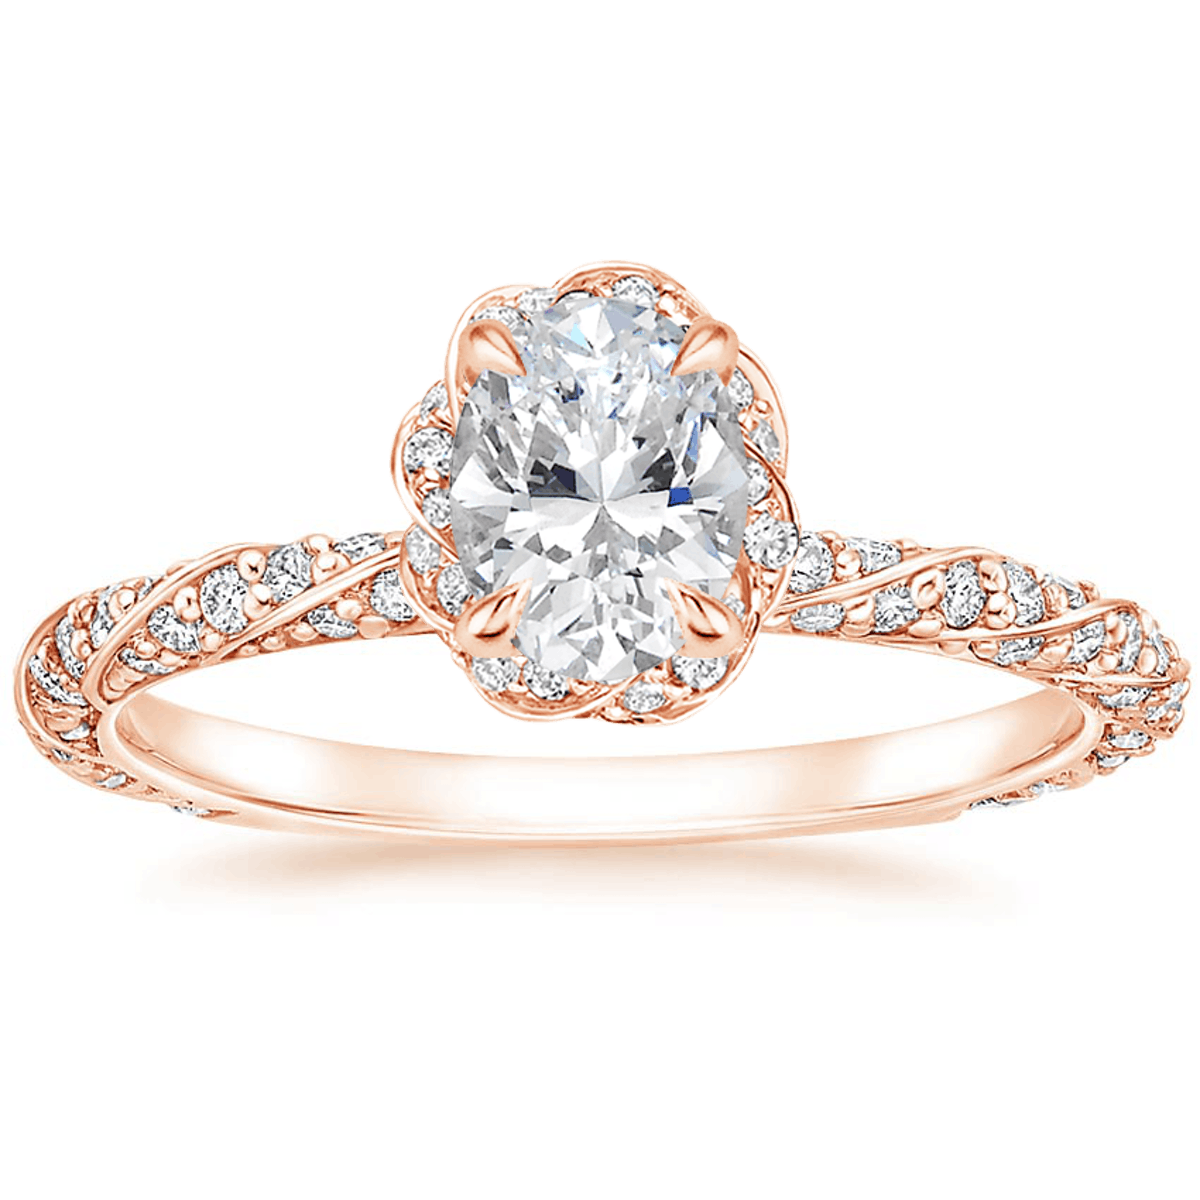 Nova Diamond Engagement Ring in 14k Rose Gold, available to shop via Brilliant Earth.